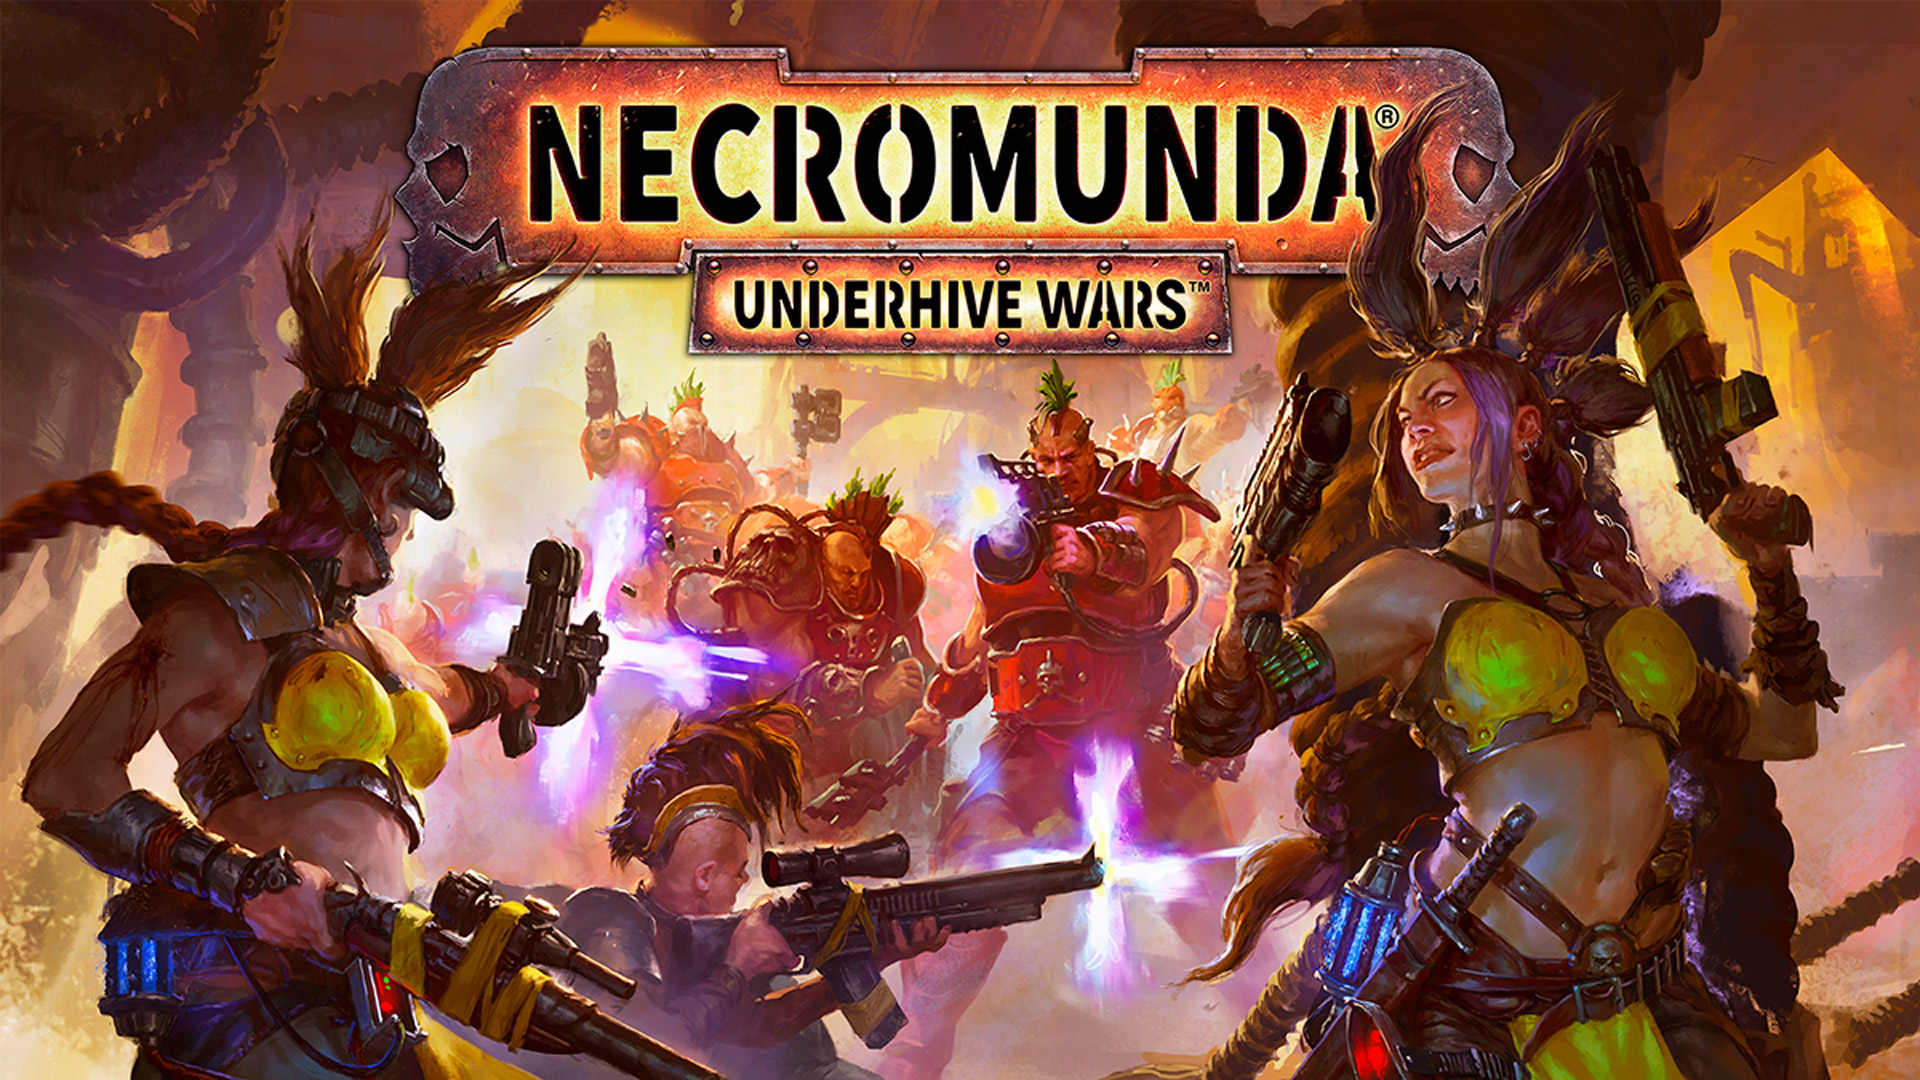 Necromunda: Underhive Wars Wallpaper in 1920x1080